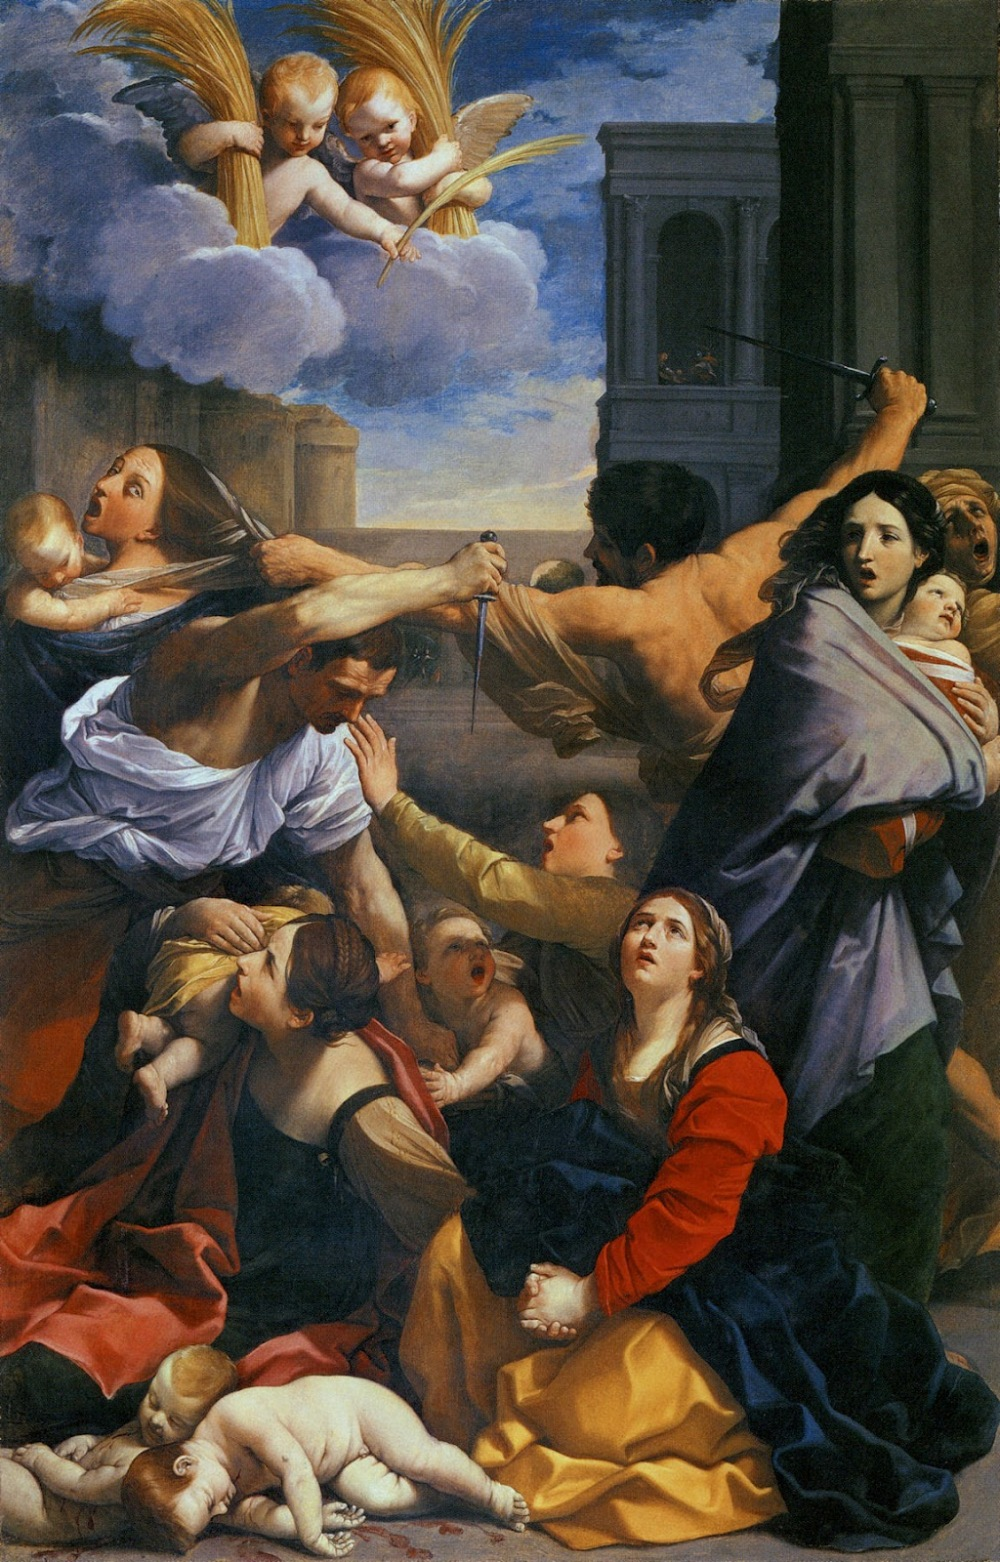 guido_reni_-_massacre_of_the_innocents